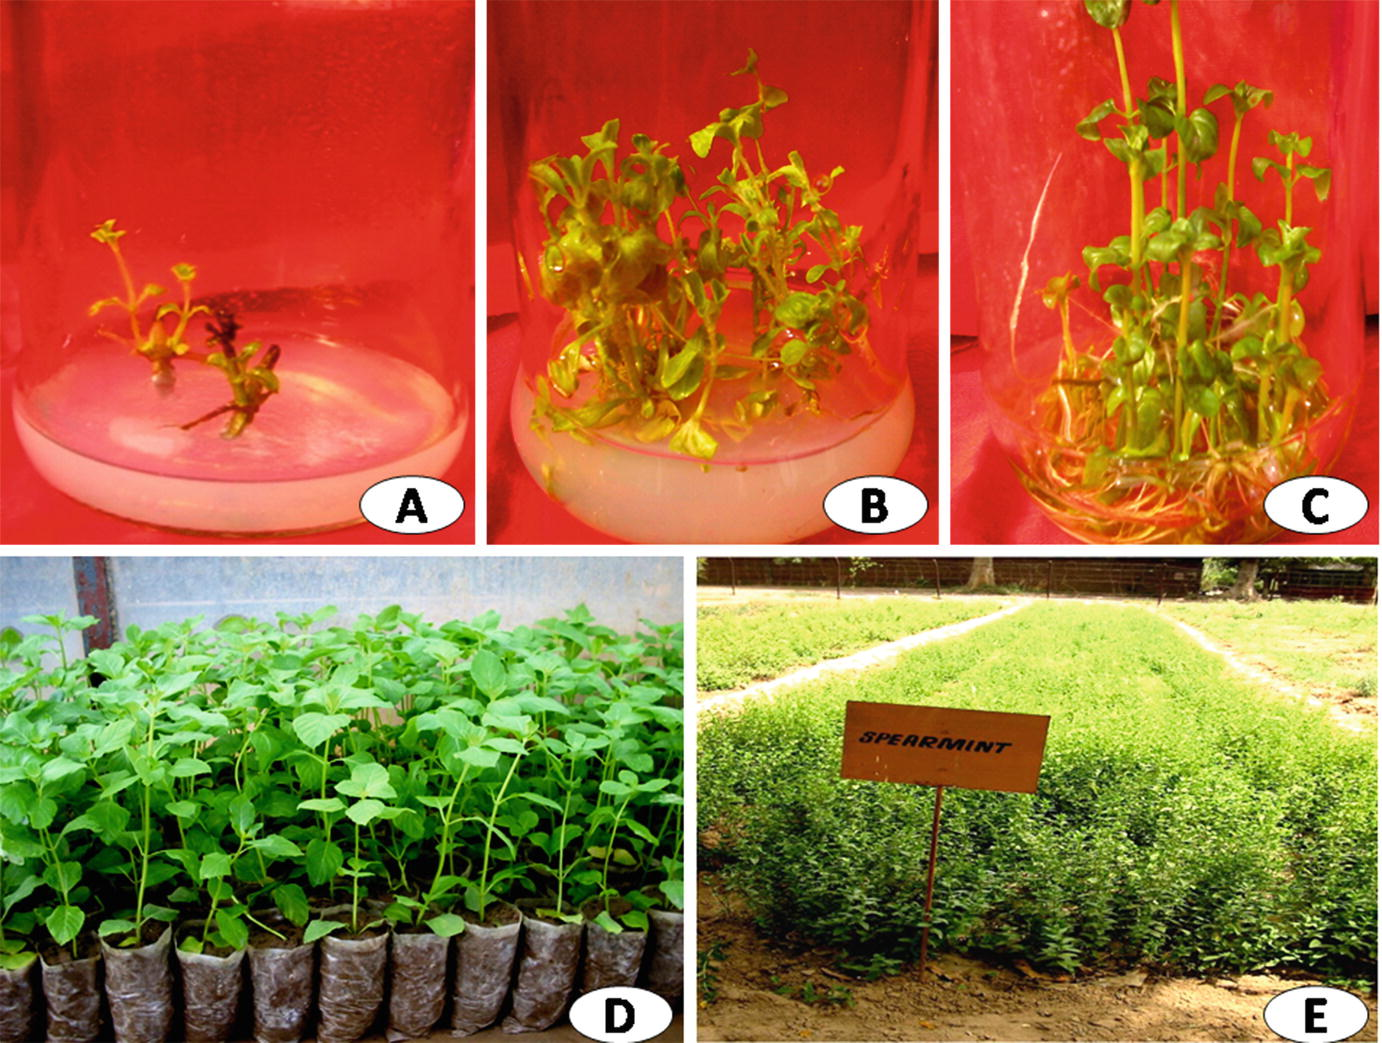 Cell and Tissue Culture Approaches in Relation to Crop Improvement